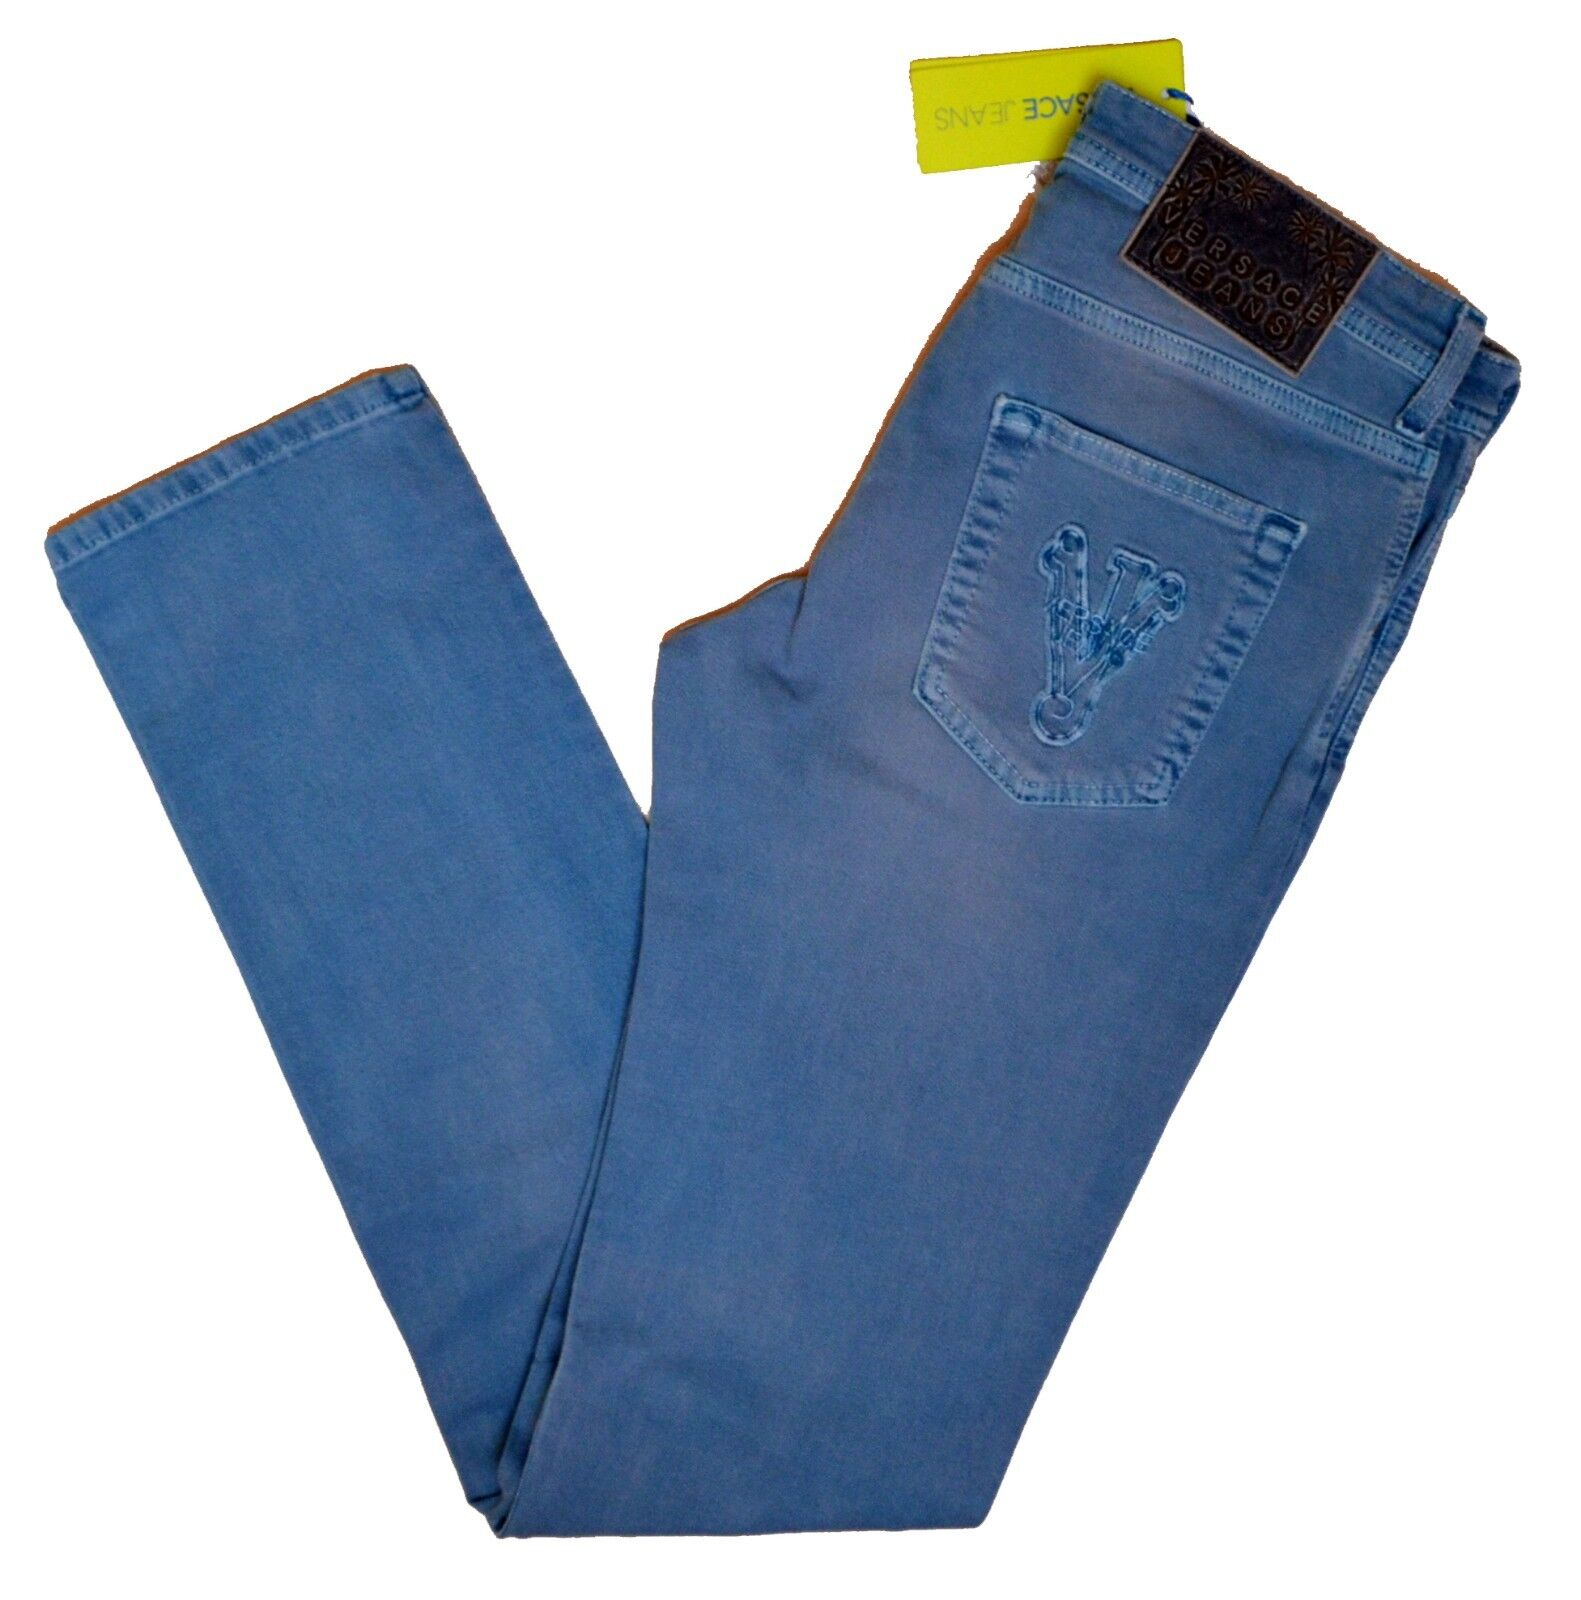 Jeans Gianni Versace Collection Men trousers Made ITALY Slim Fit Pantalone men